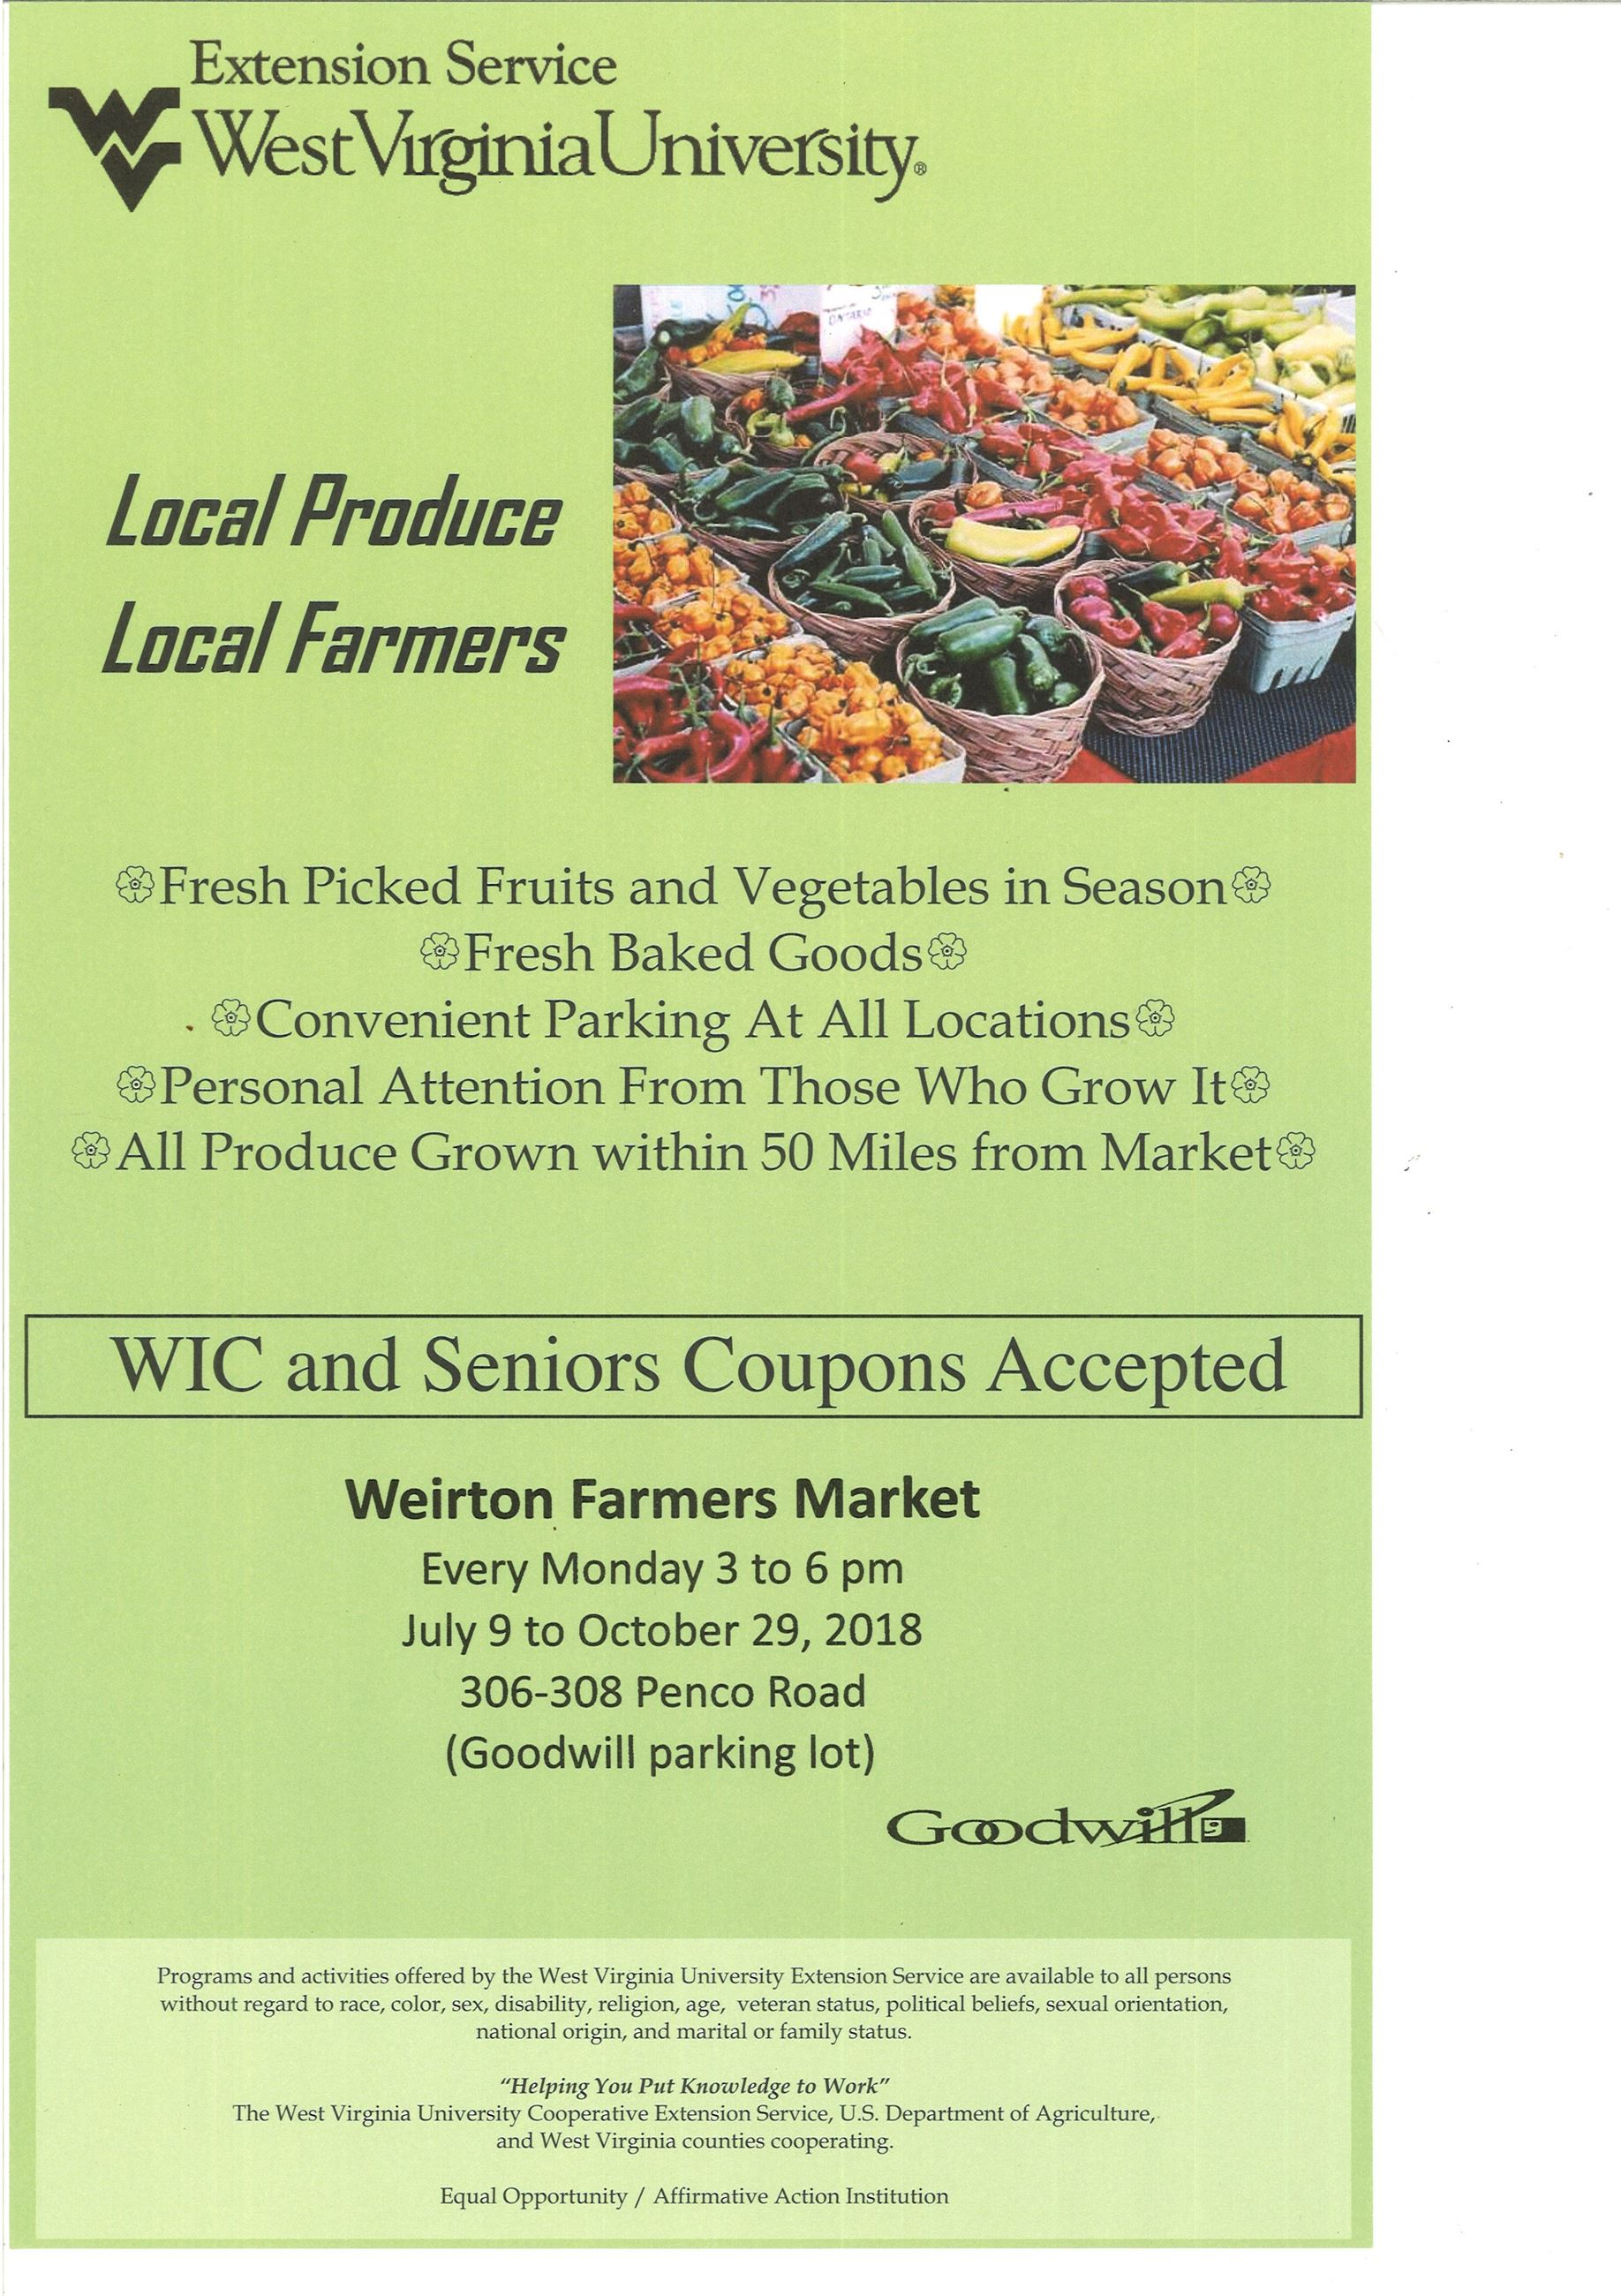 Weirton Farmers Market July9-Oct.29